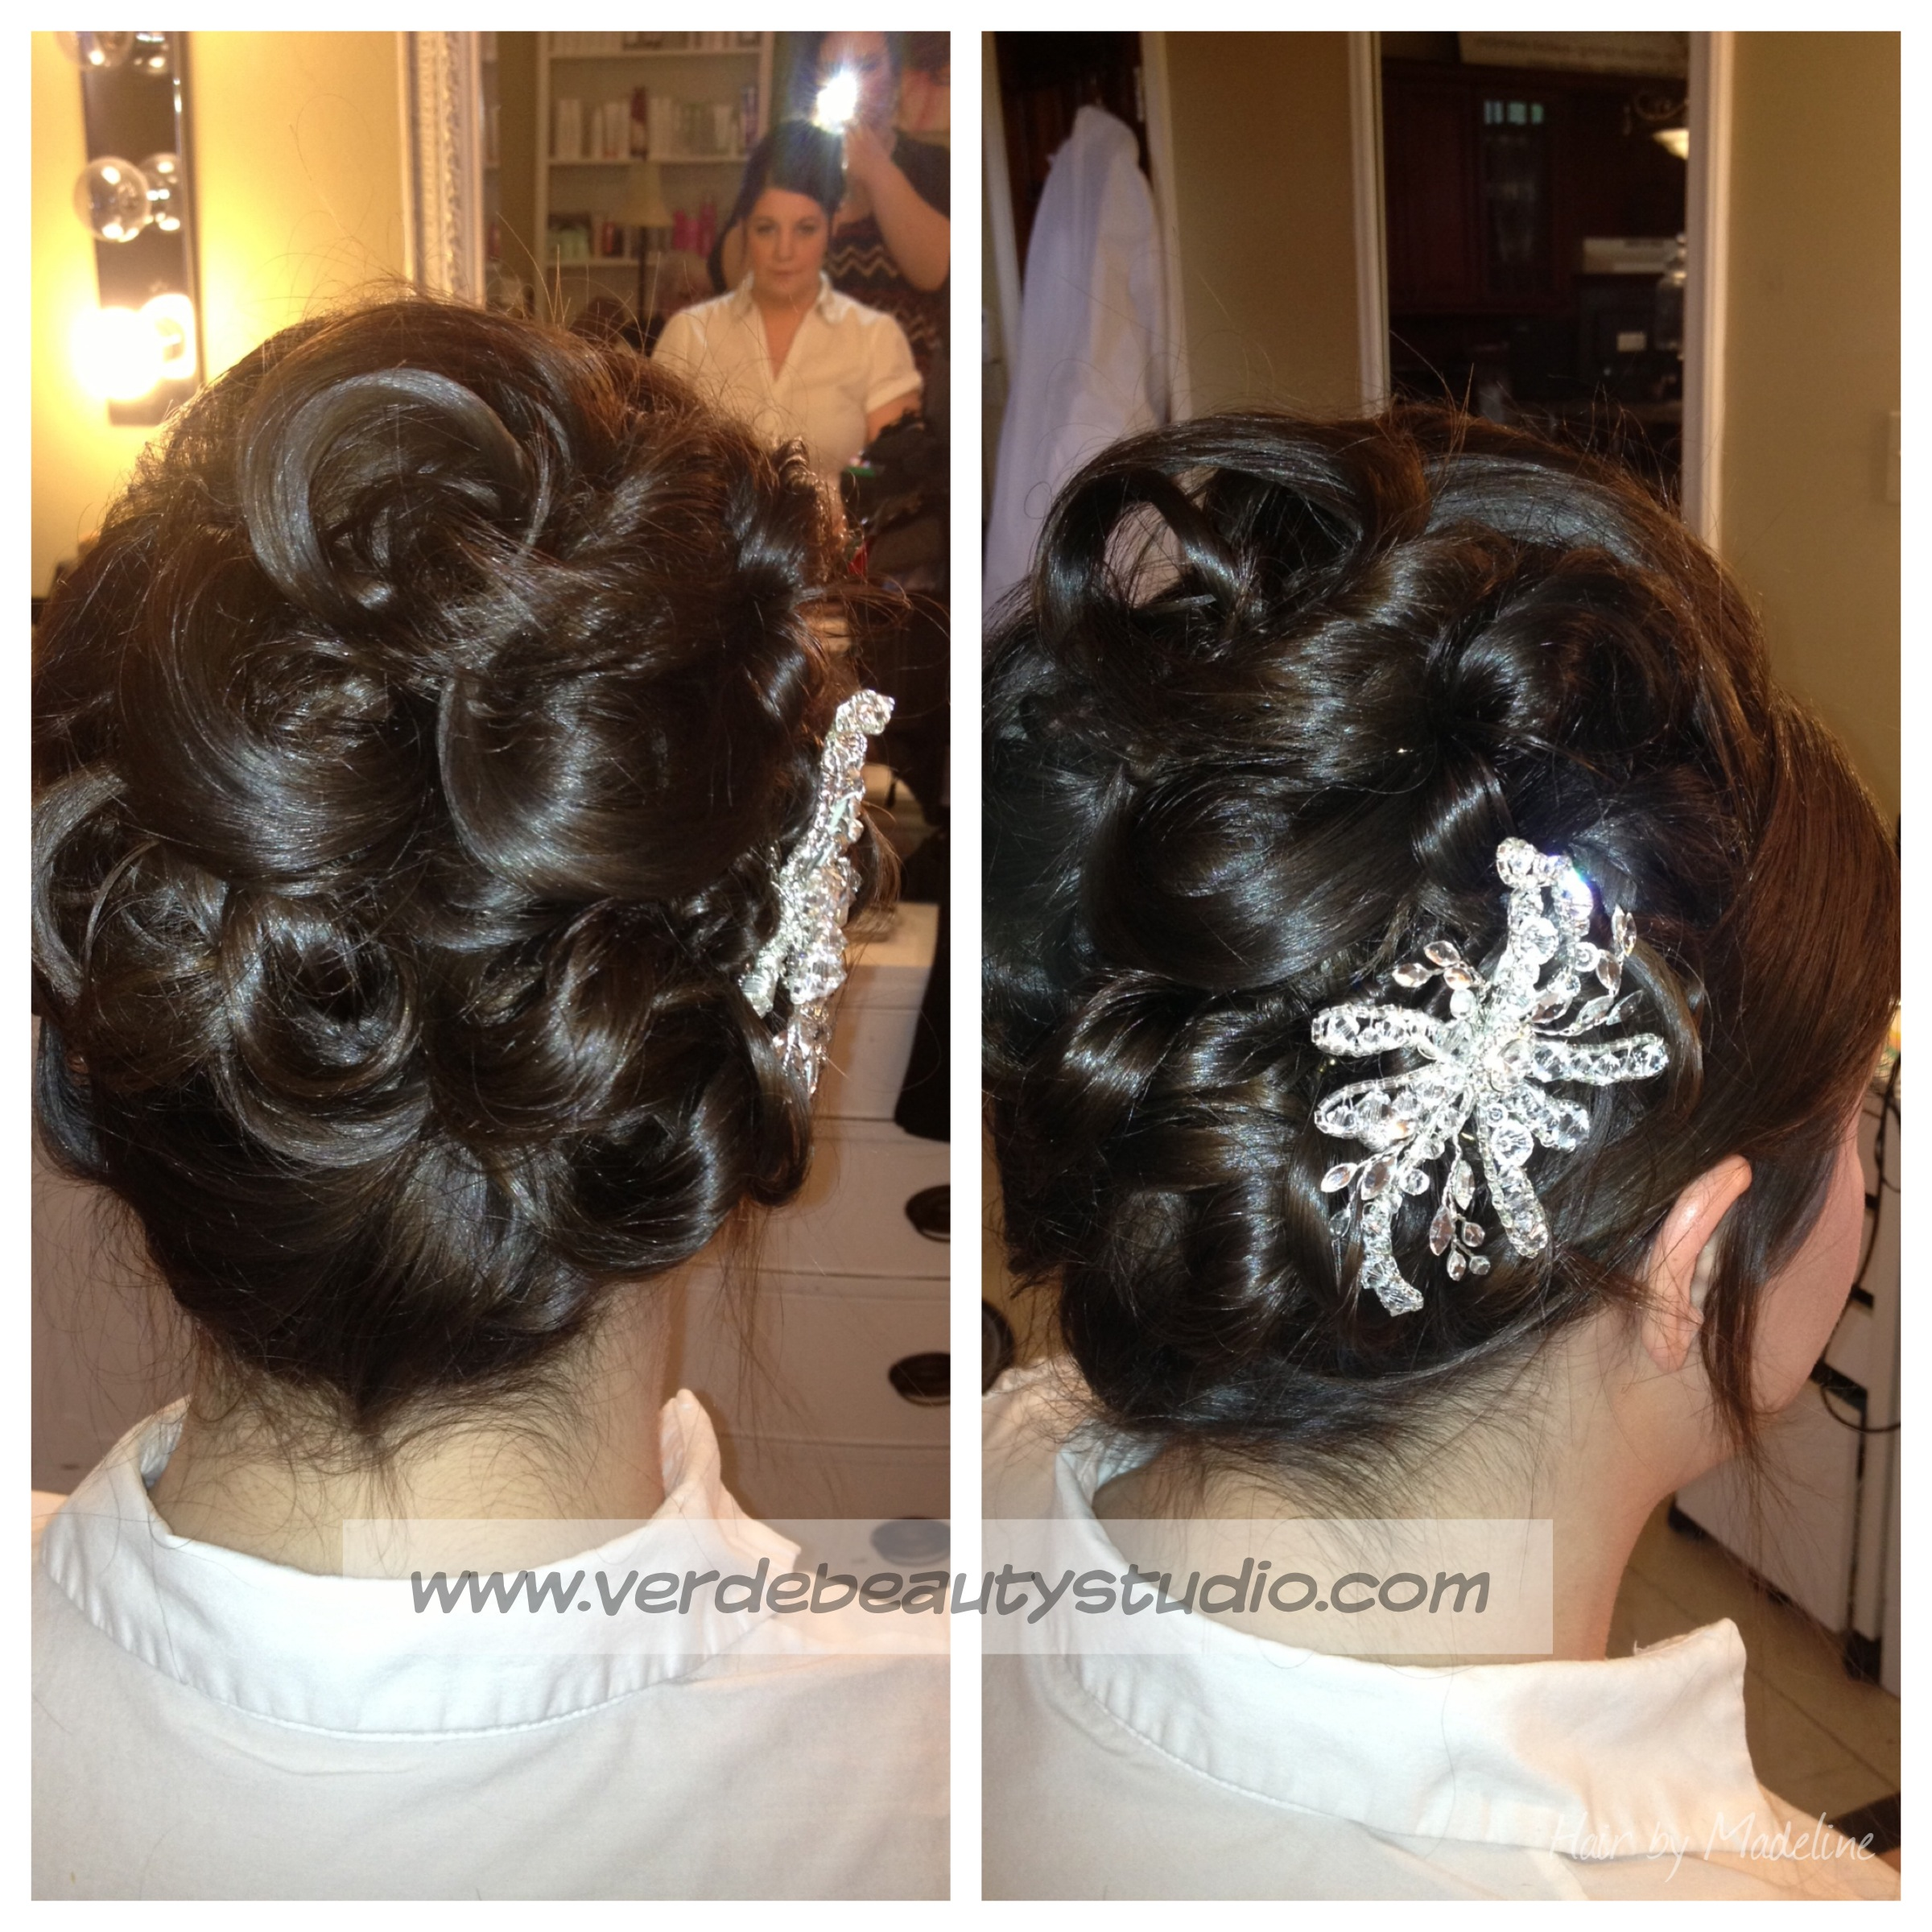 verde beauty studio bridal hair 004.JPG